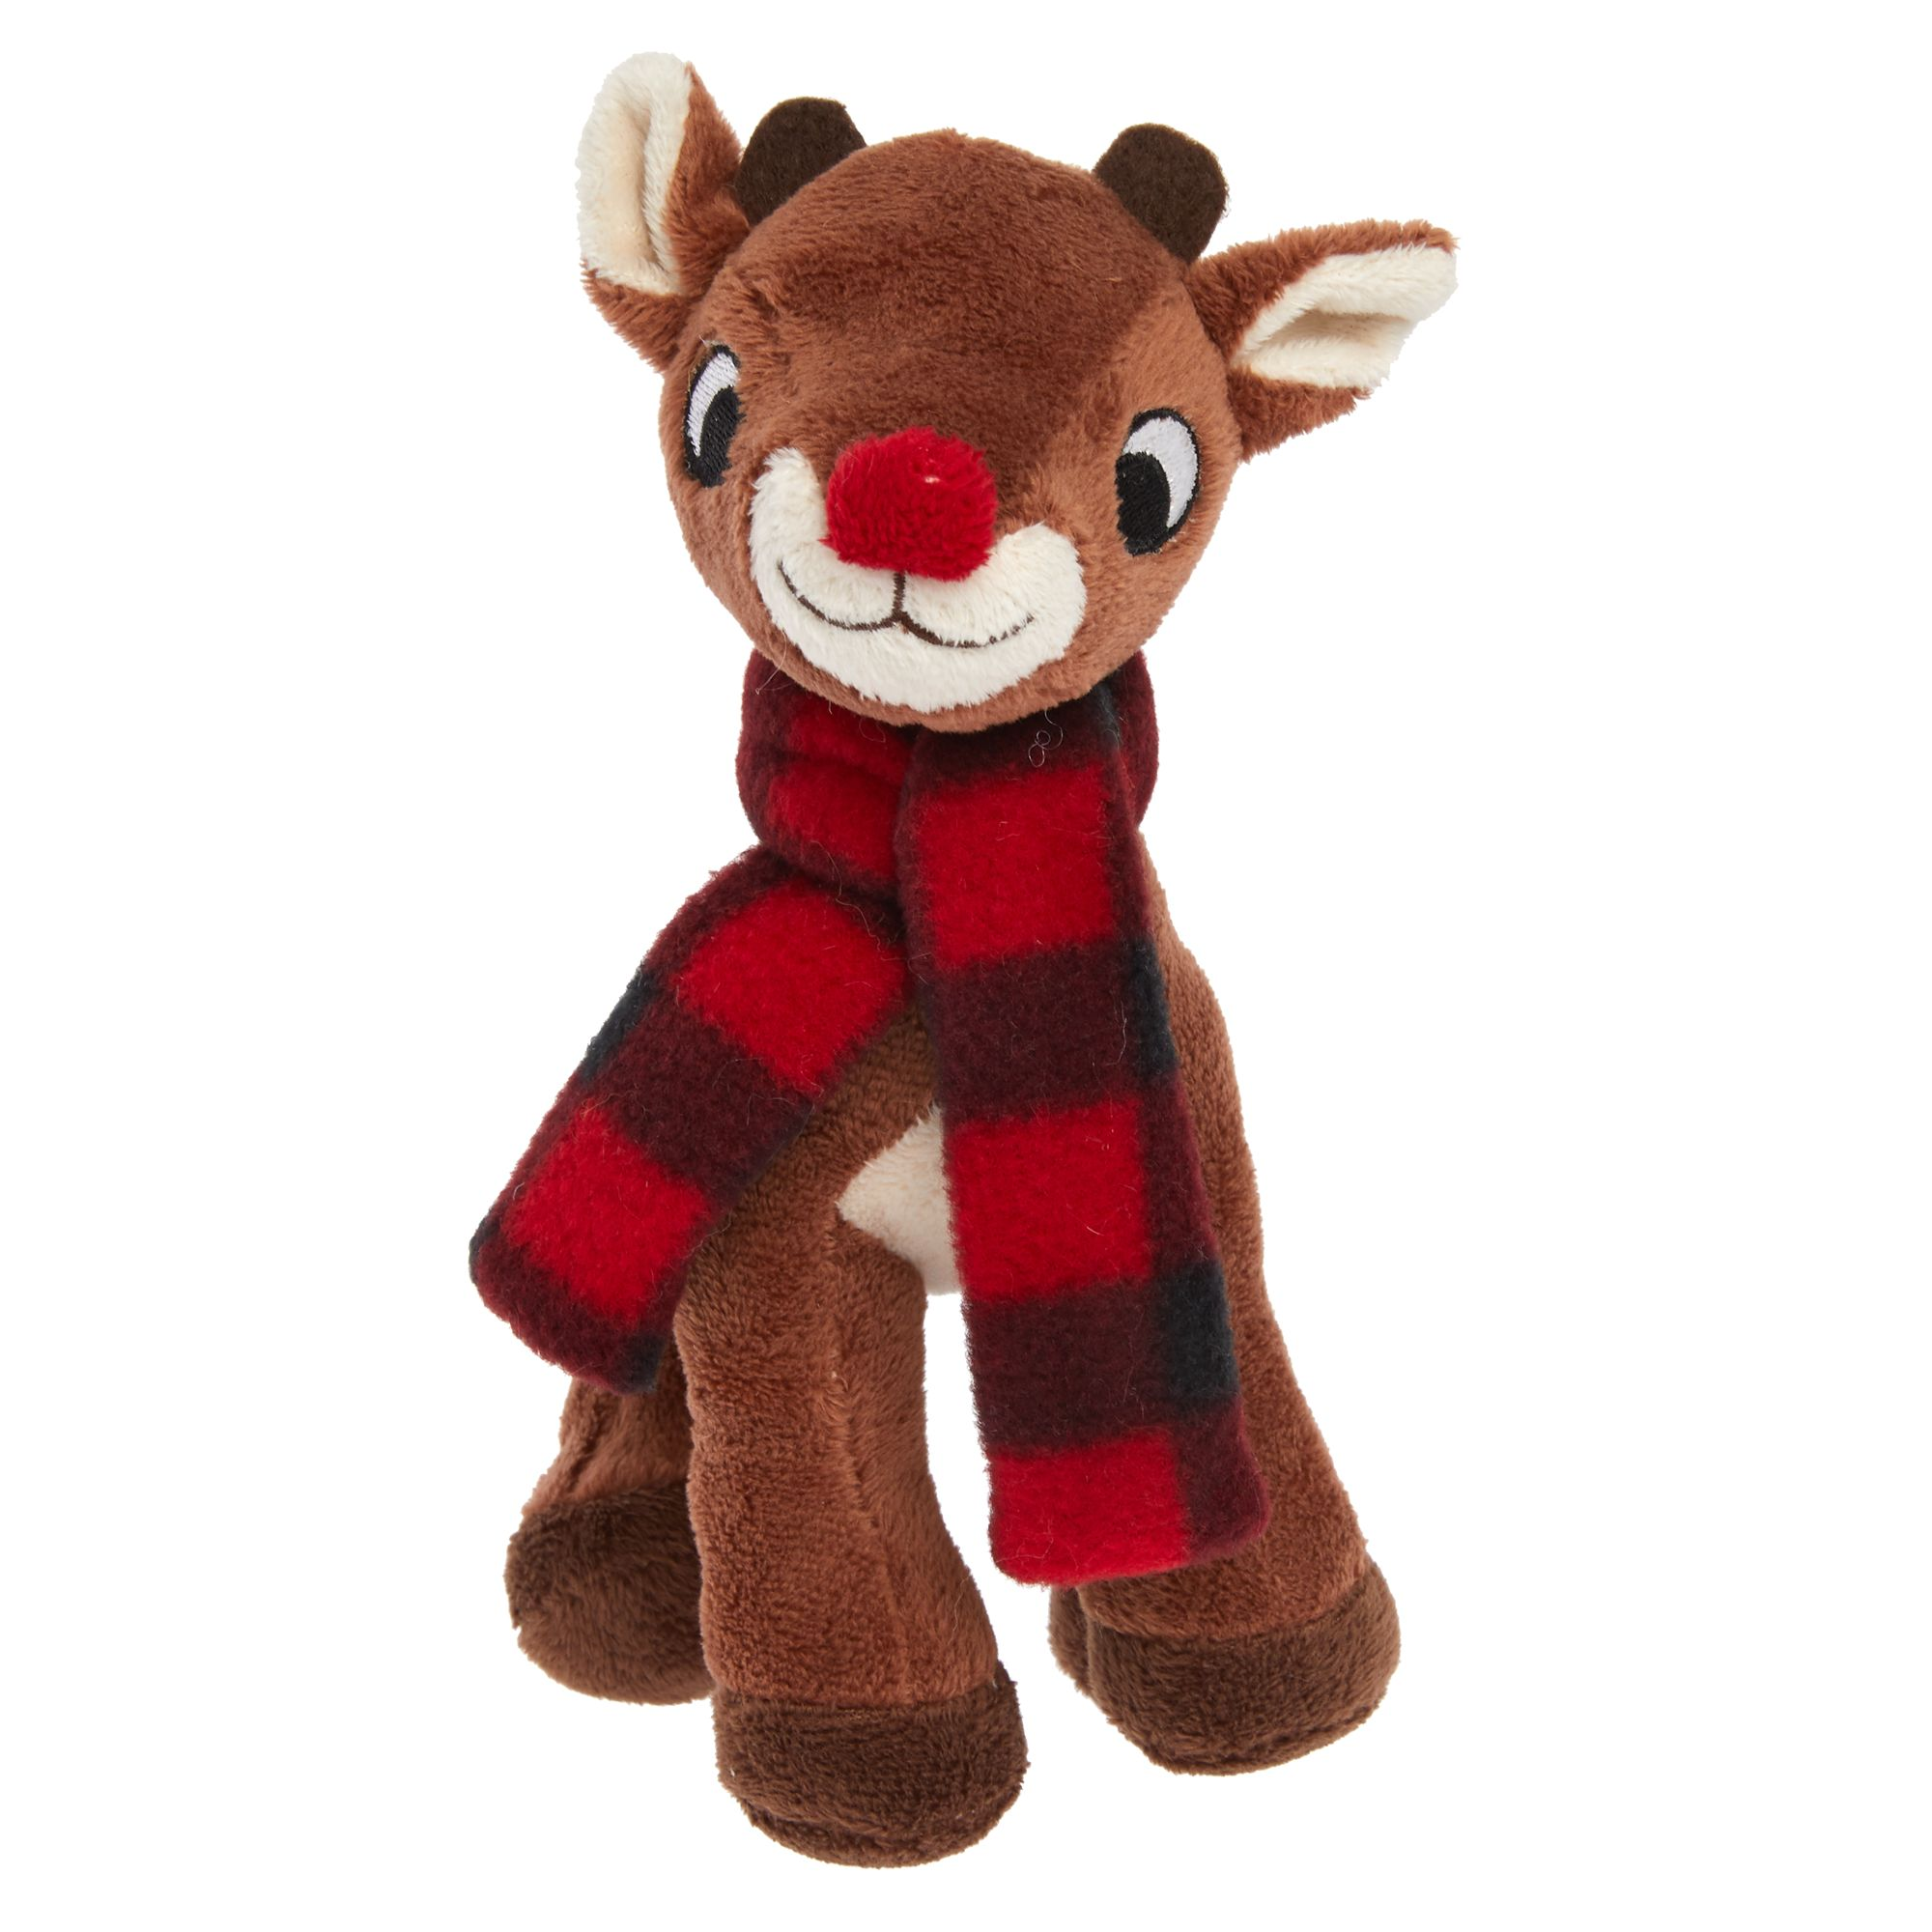 Rudolph Holiday Dog Toy - Plush, Squeaker 5270651